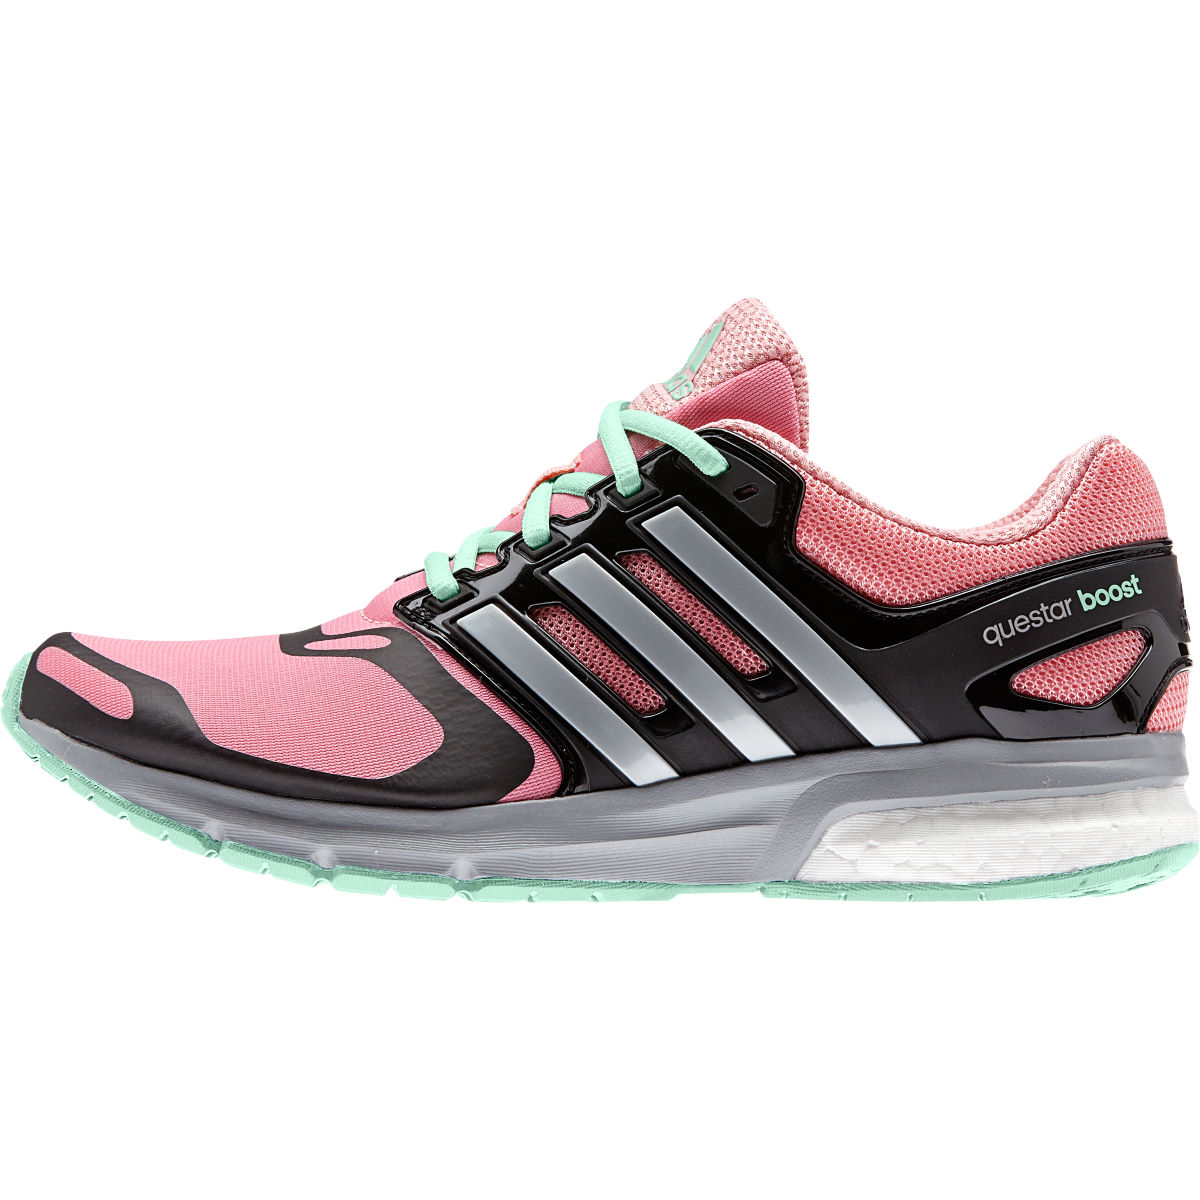 Chaussures Femme Adidas Questar Boost TF (AH15) - 8 UK Pop/Silver/Green Chaussures de running amorties